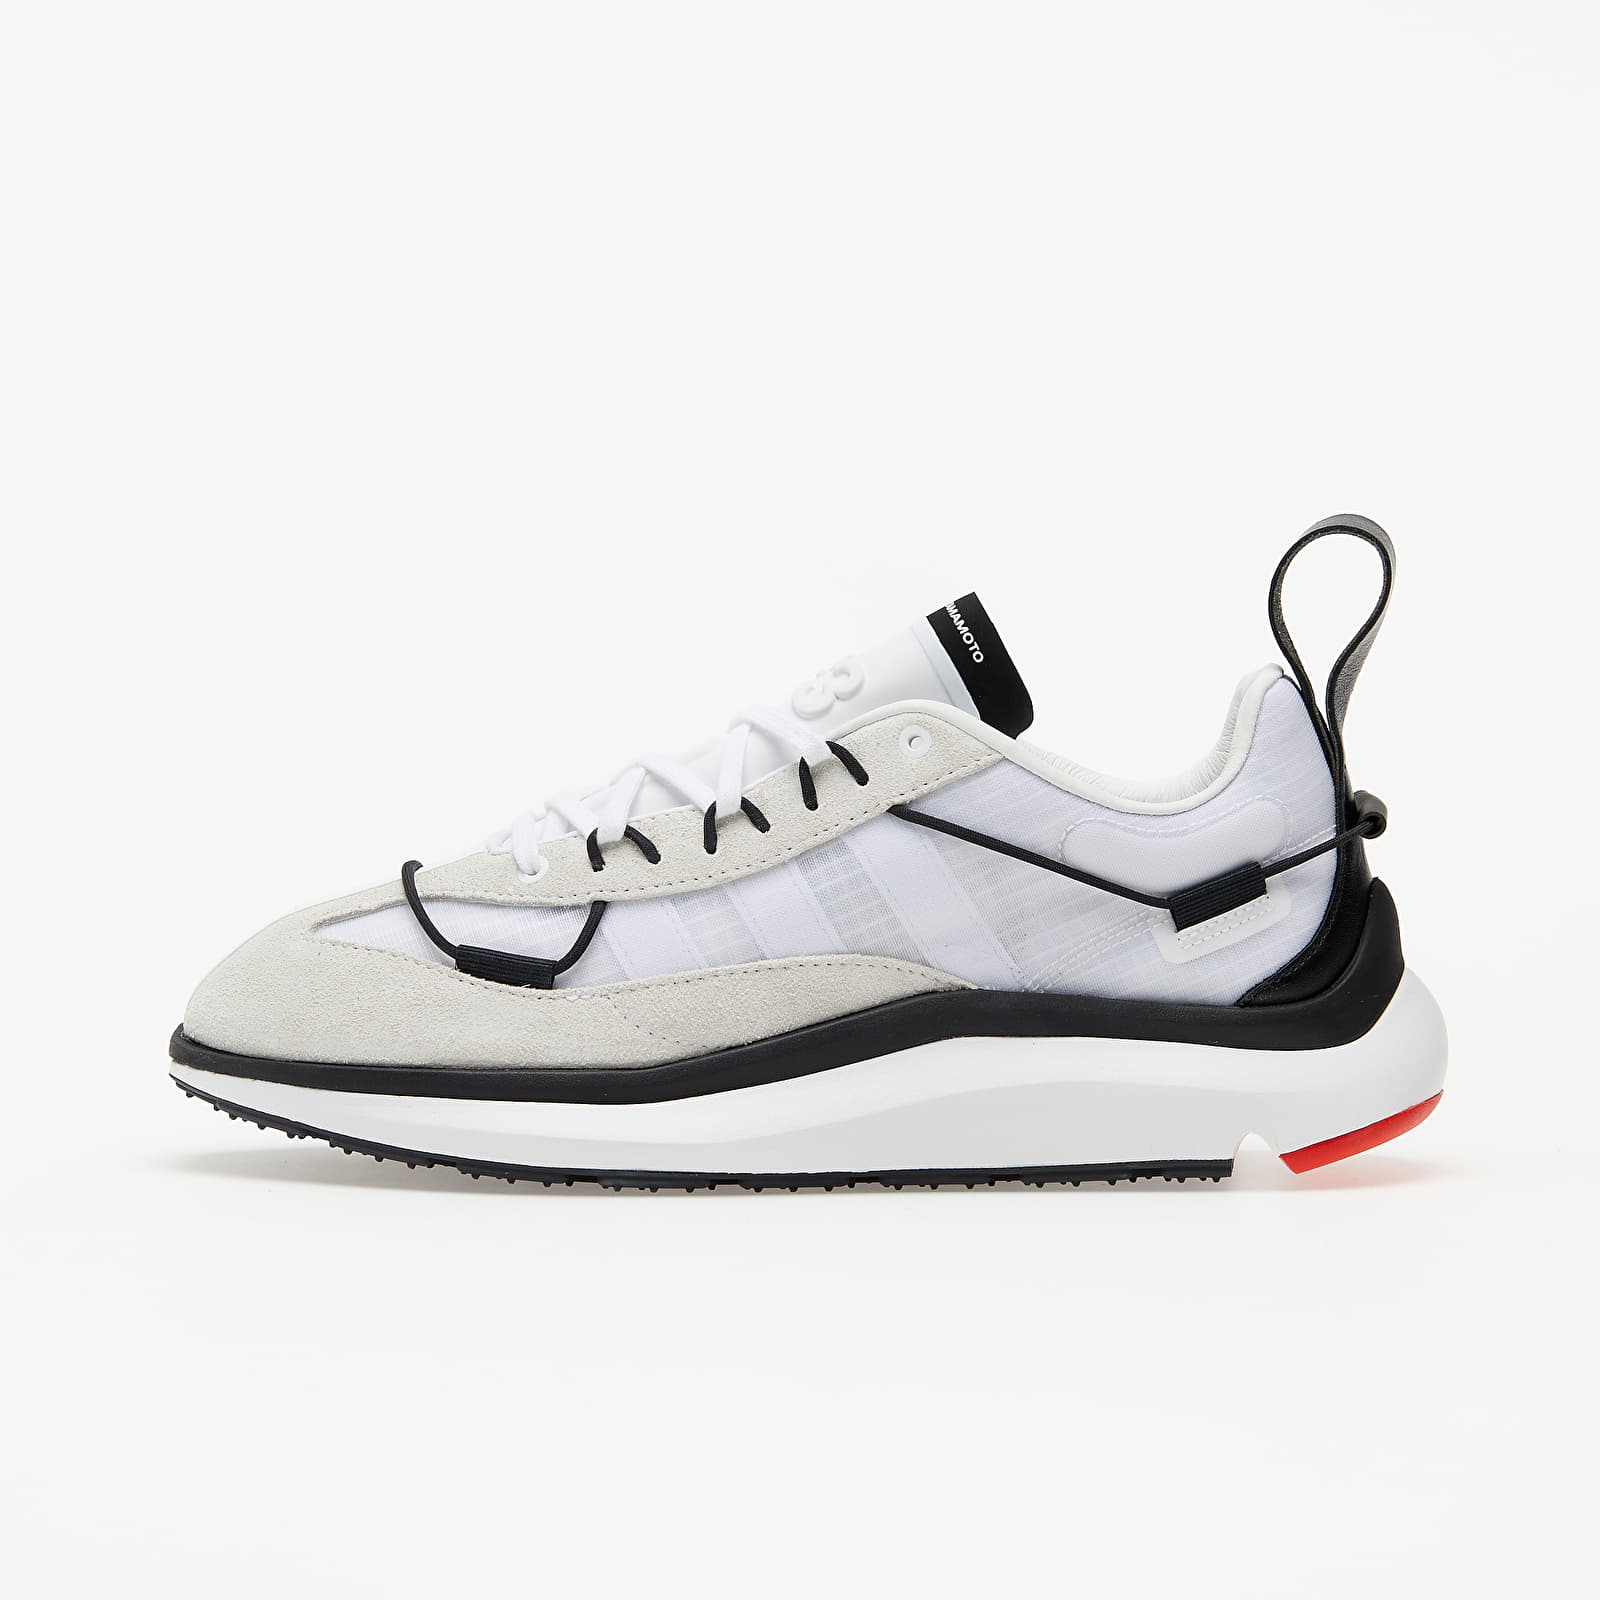 Y-3 Shiku Run White/ None/ None FX1415